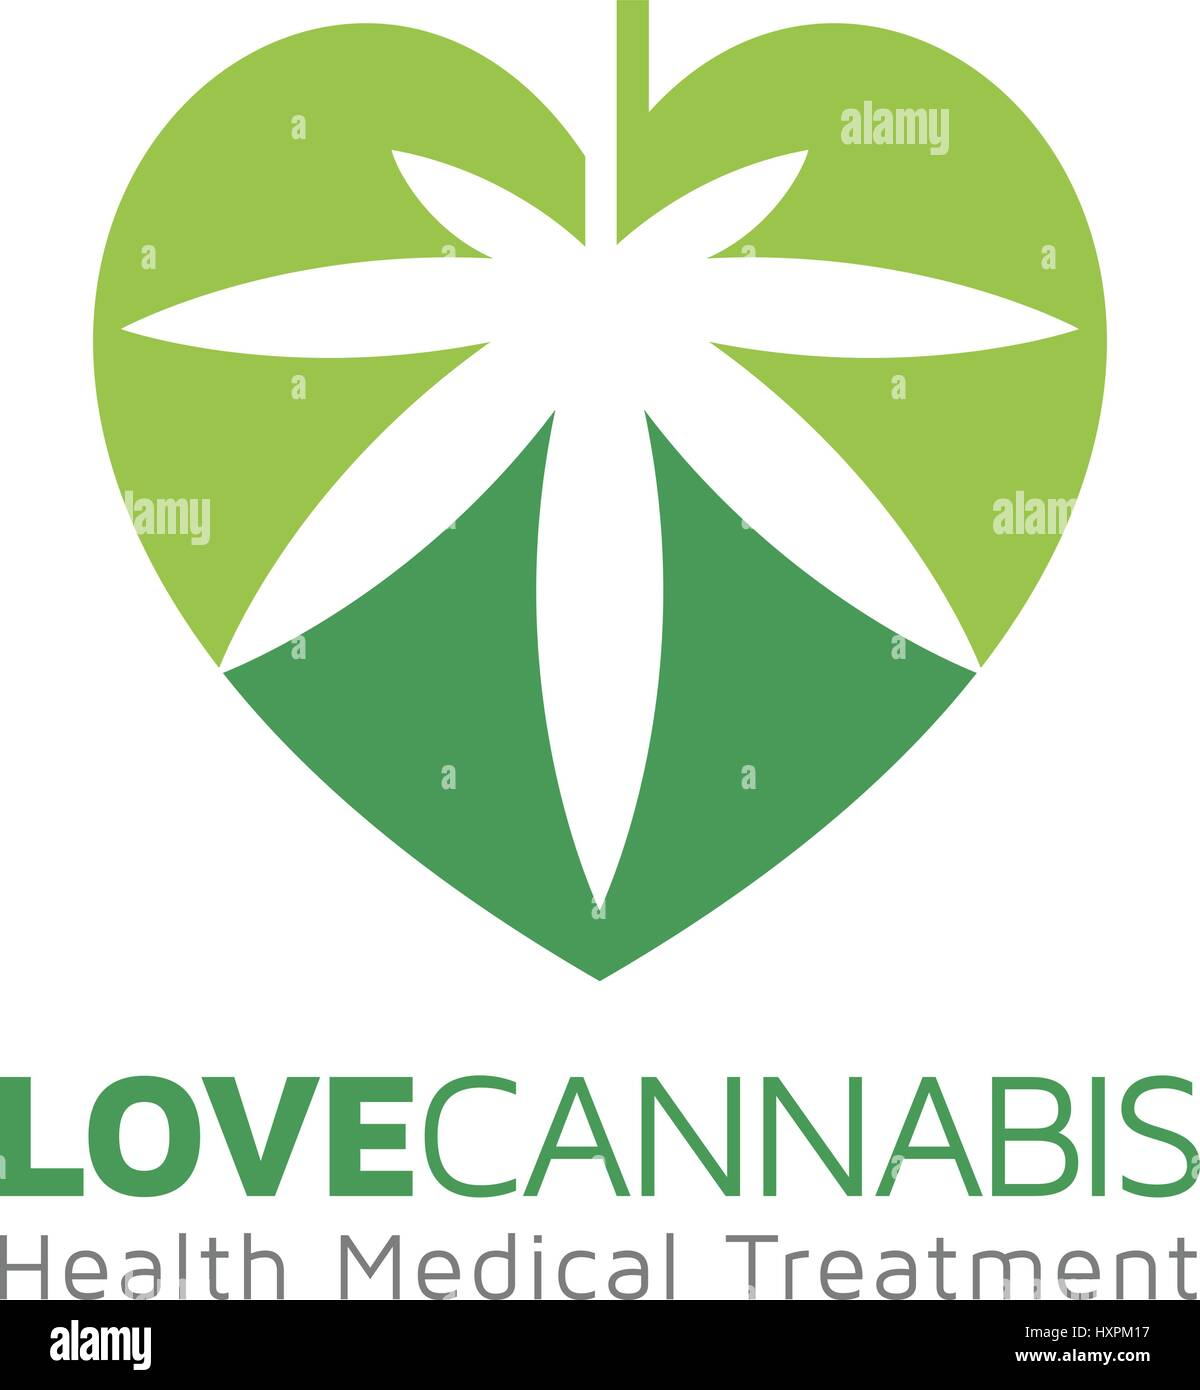 Cannabis Therapy, Medical and Health care - Stock Image